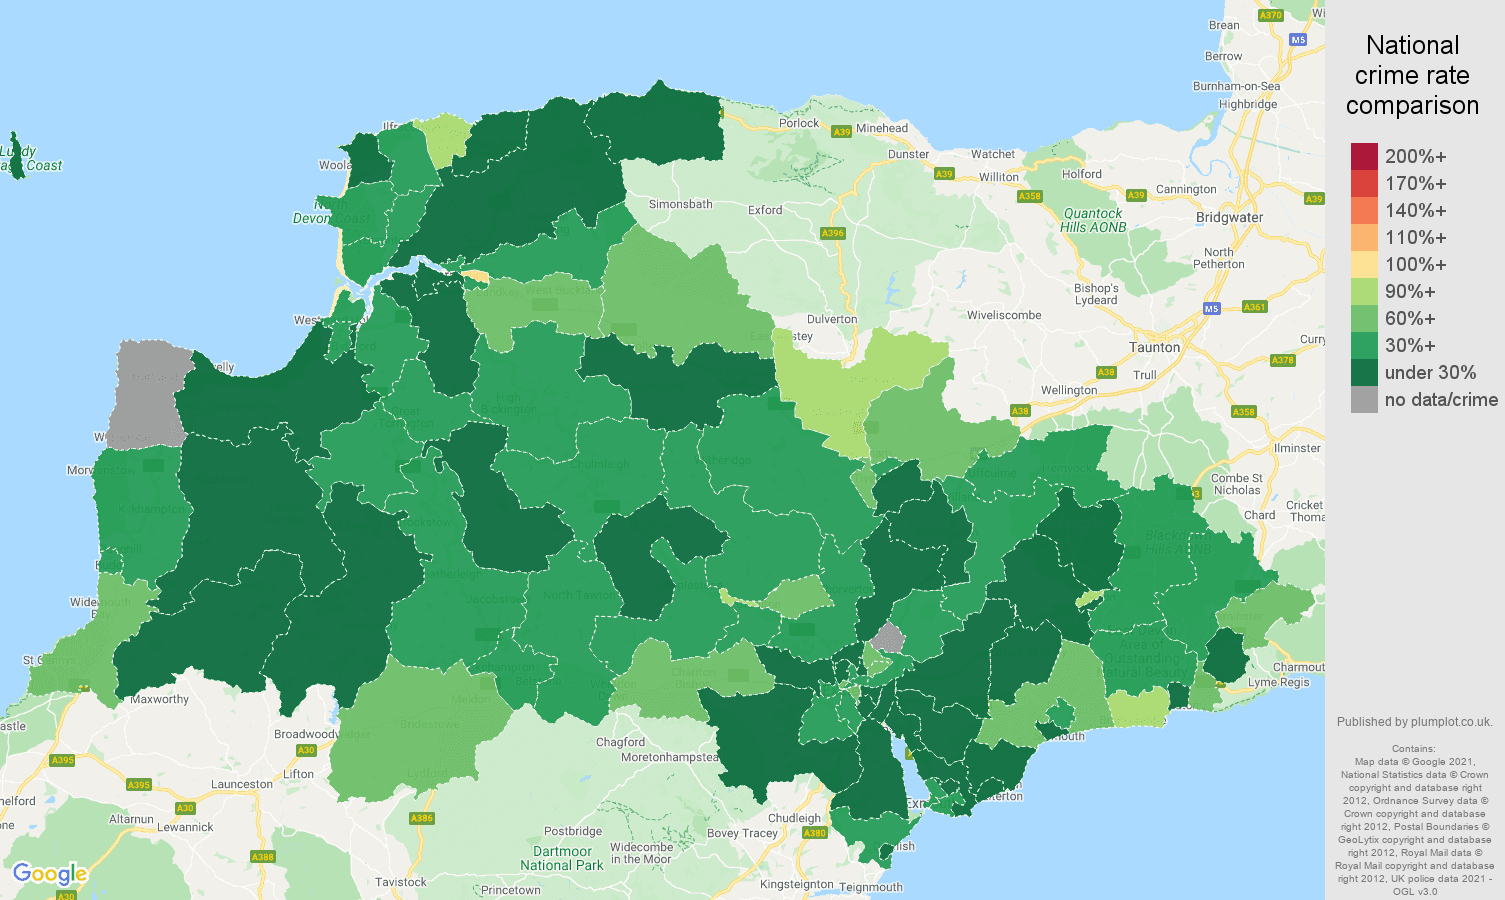 Exeter burglary crime rate comparison map